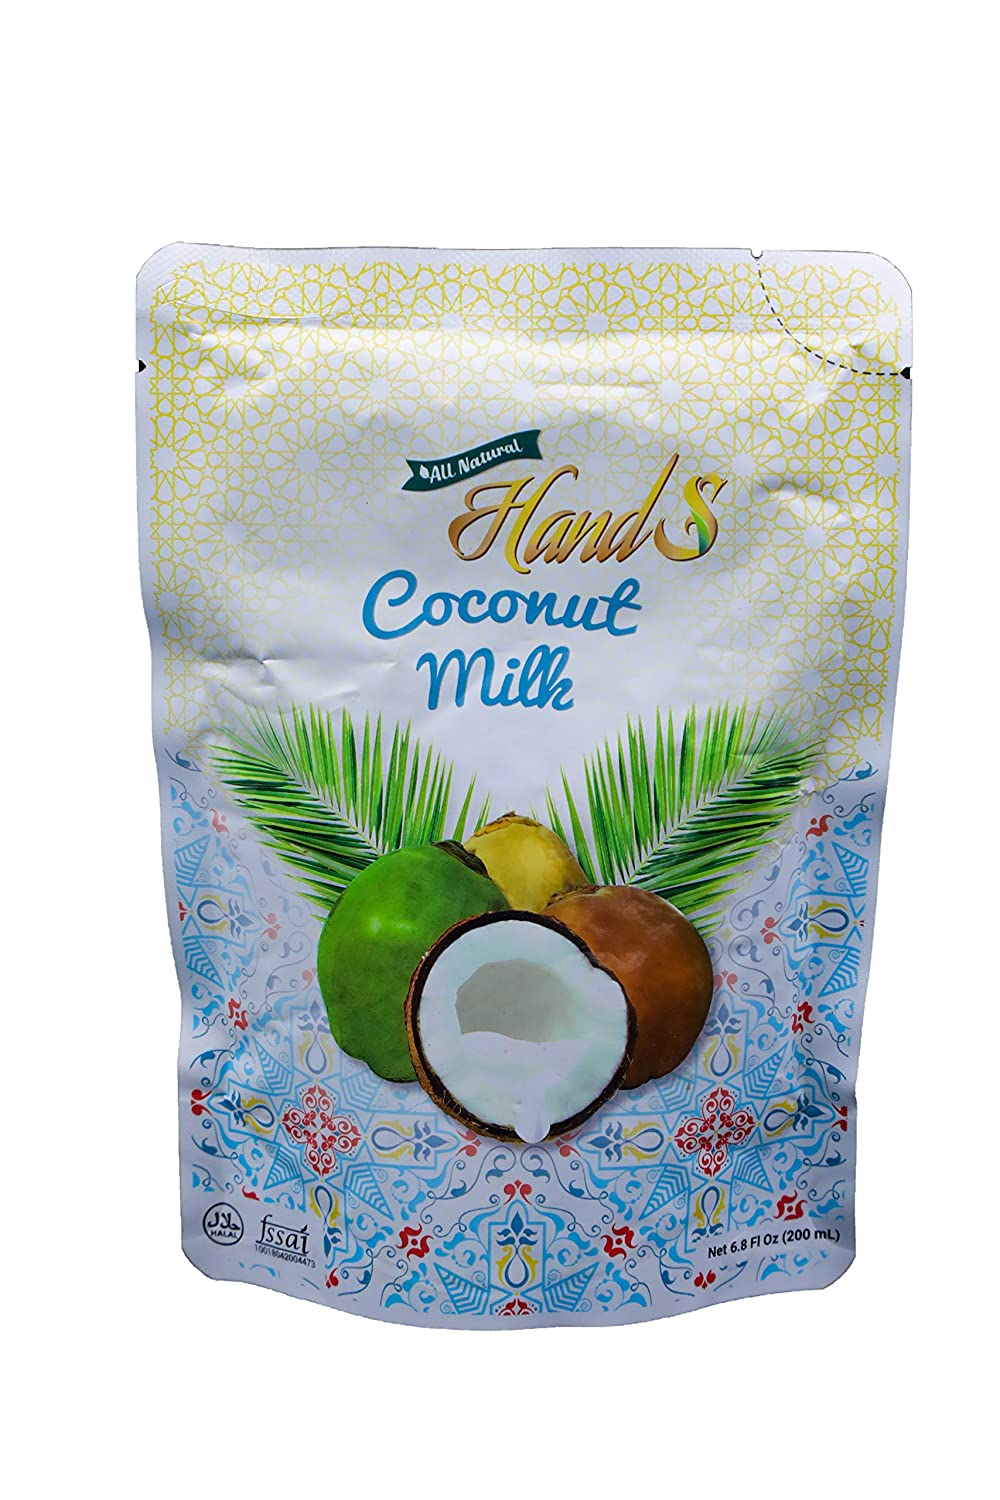 HandS Coconut Milk 18g Free shipping anywhere in the nation Unsweetened 6.8oz - 200ml Award-winning store